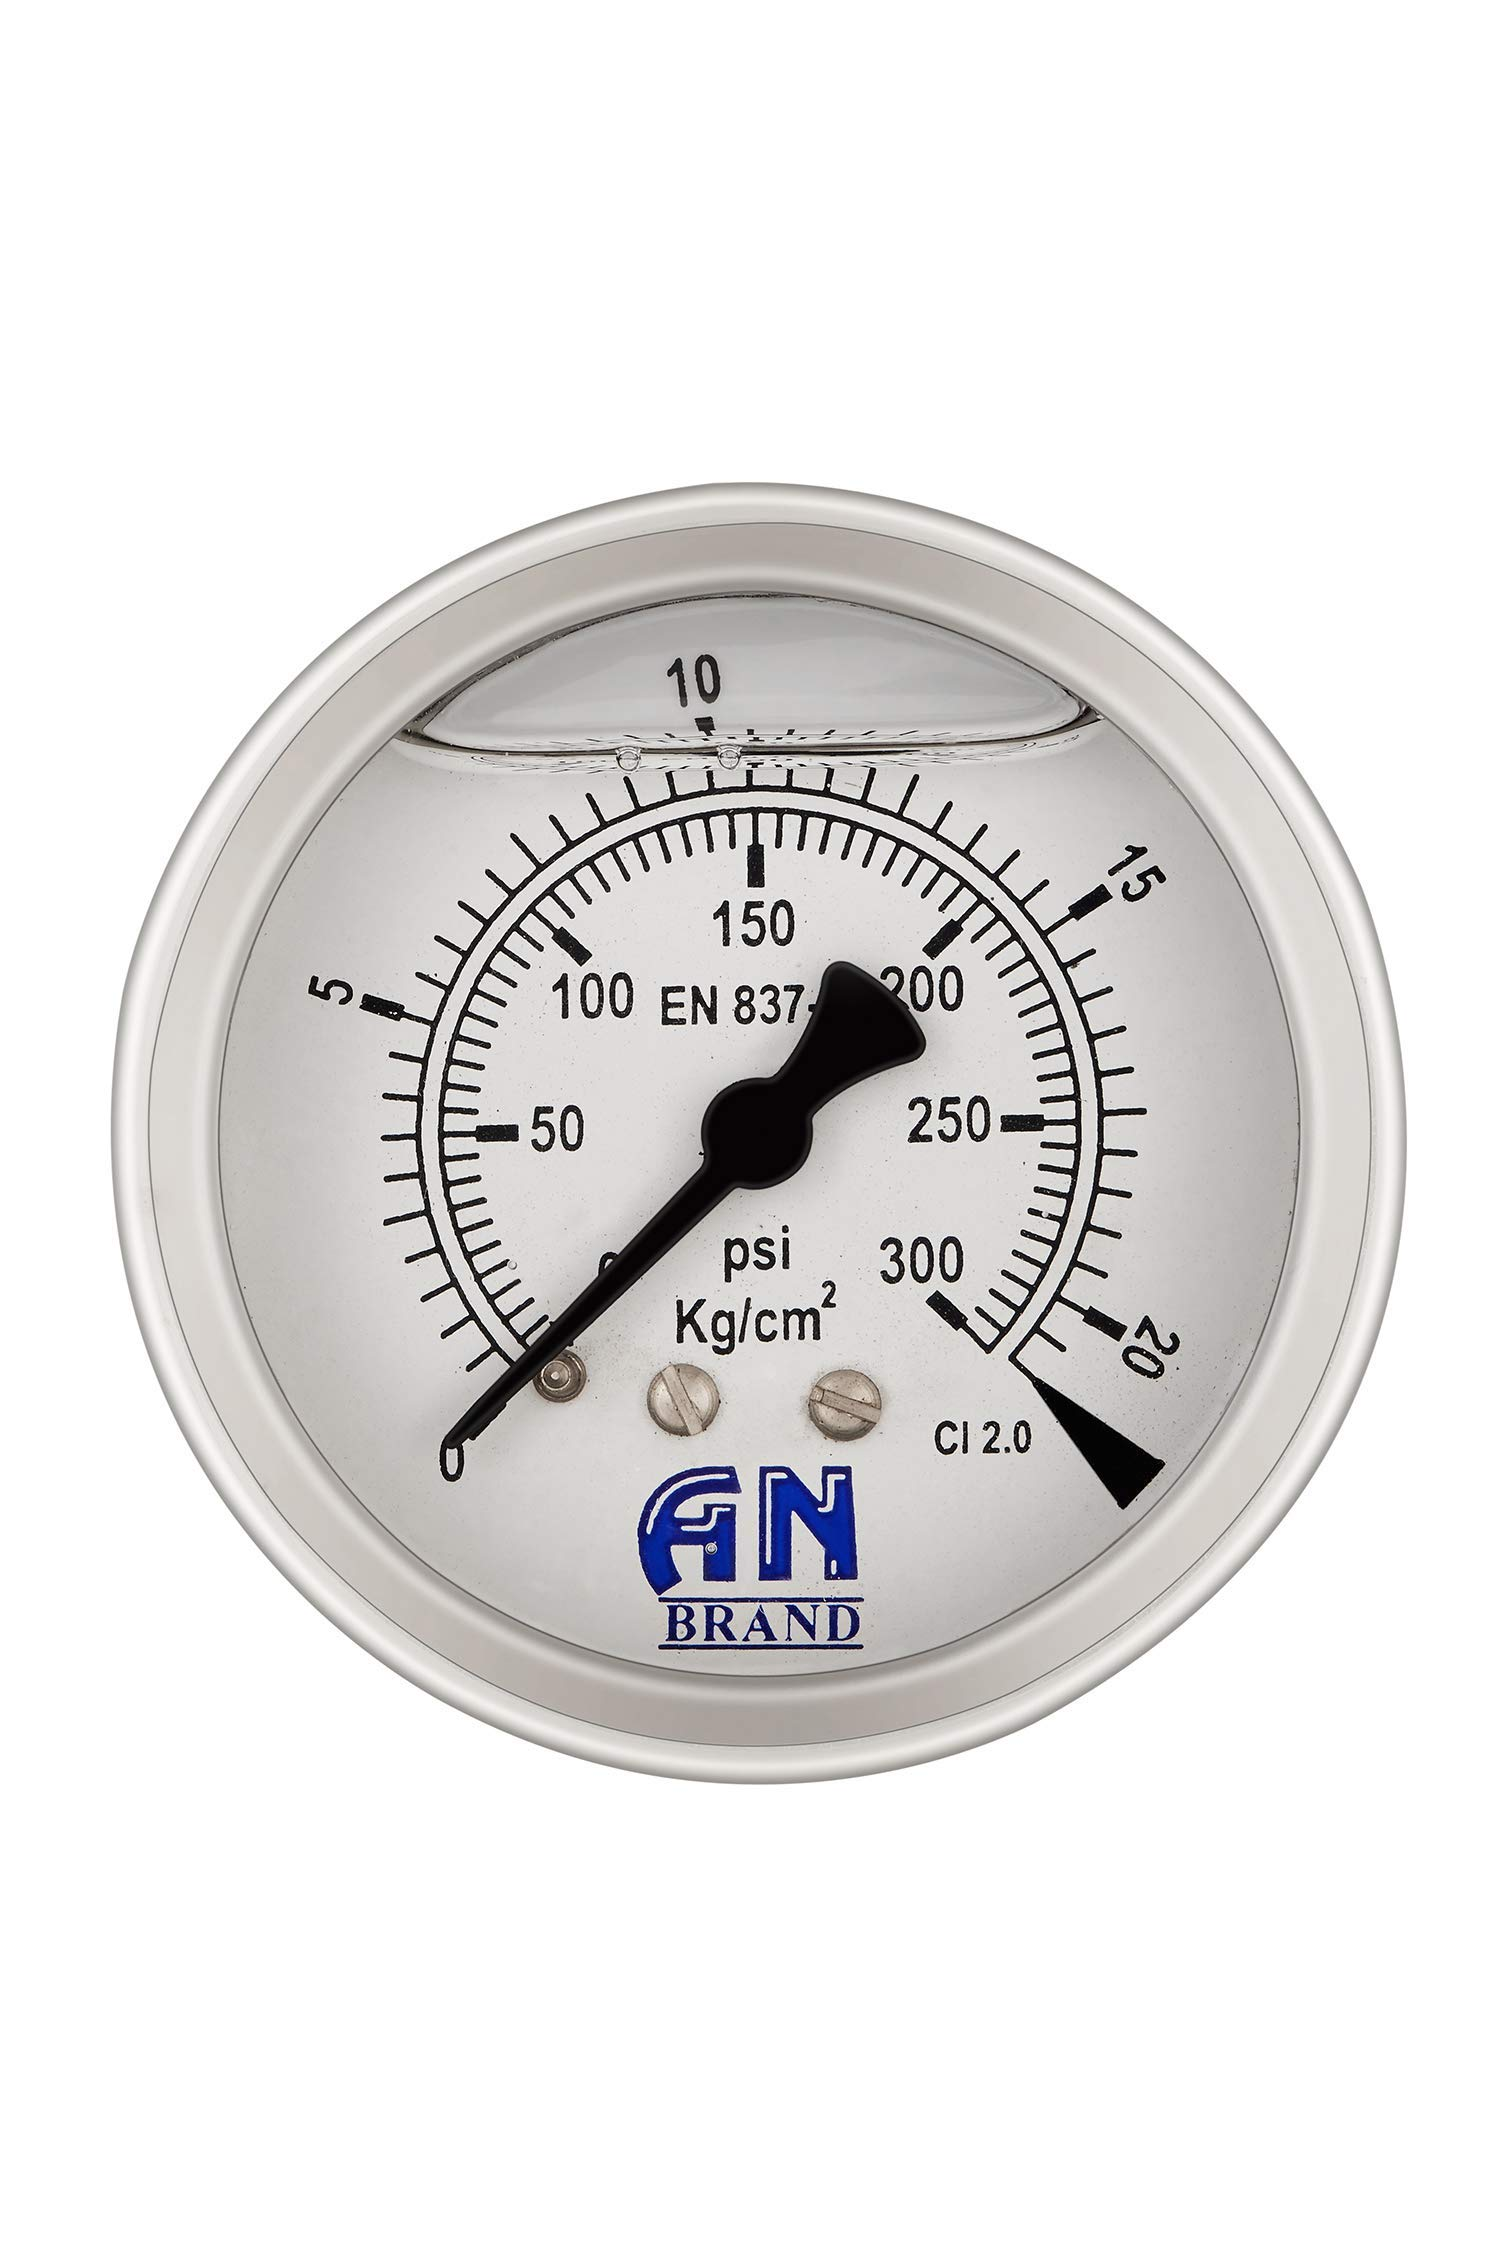 Amazon price history for AN Brand Back Mounted RO 63 mm Pressure Gauge